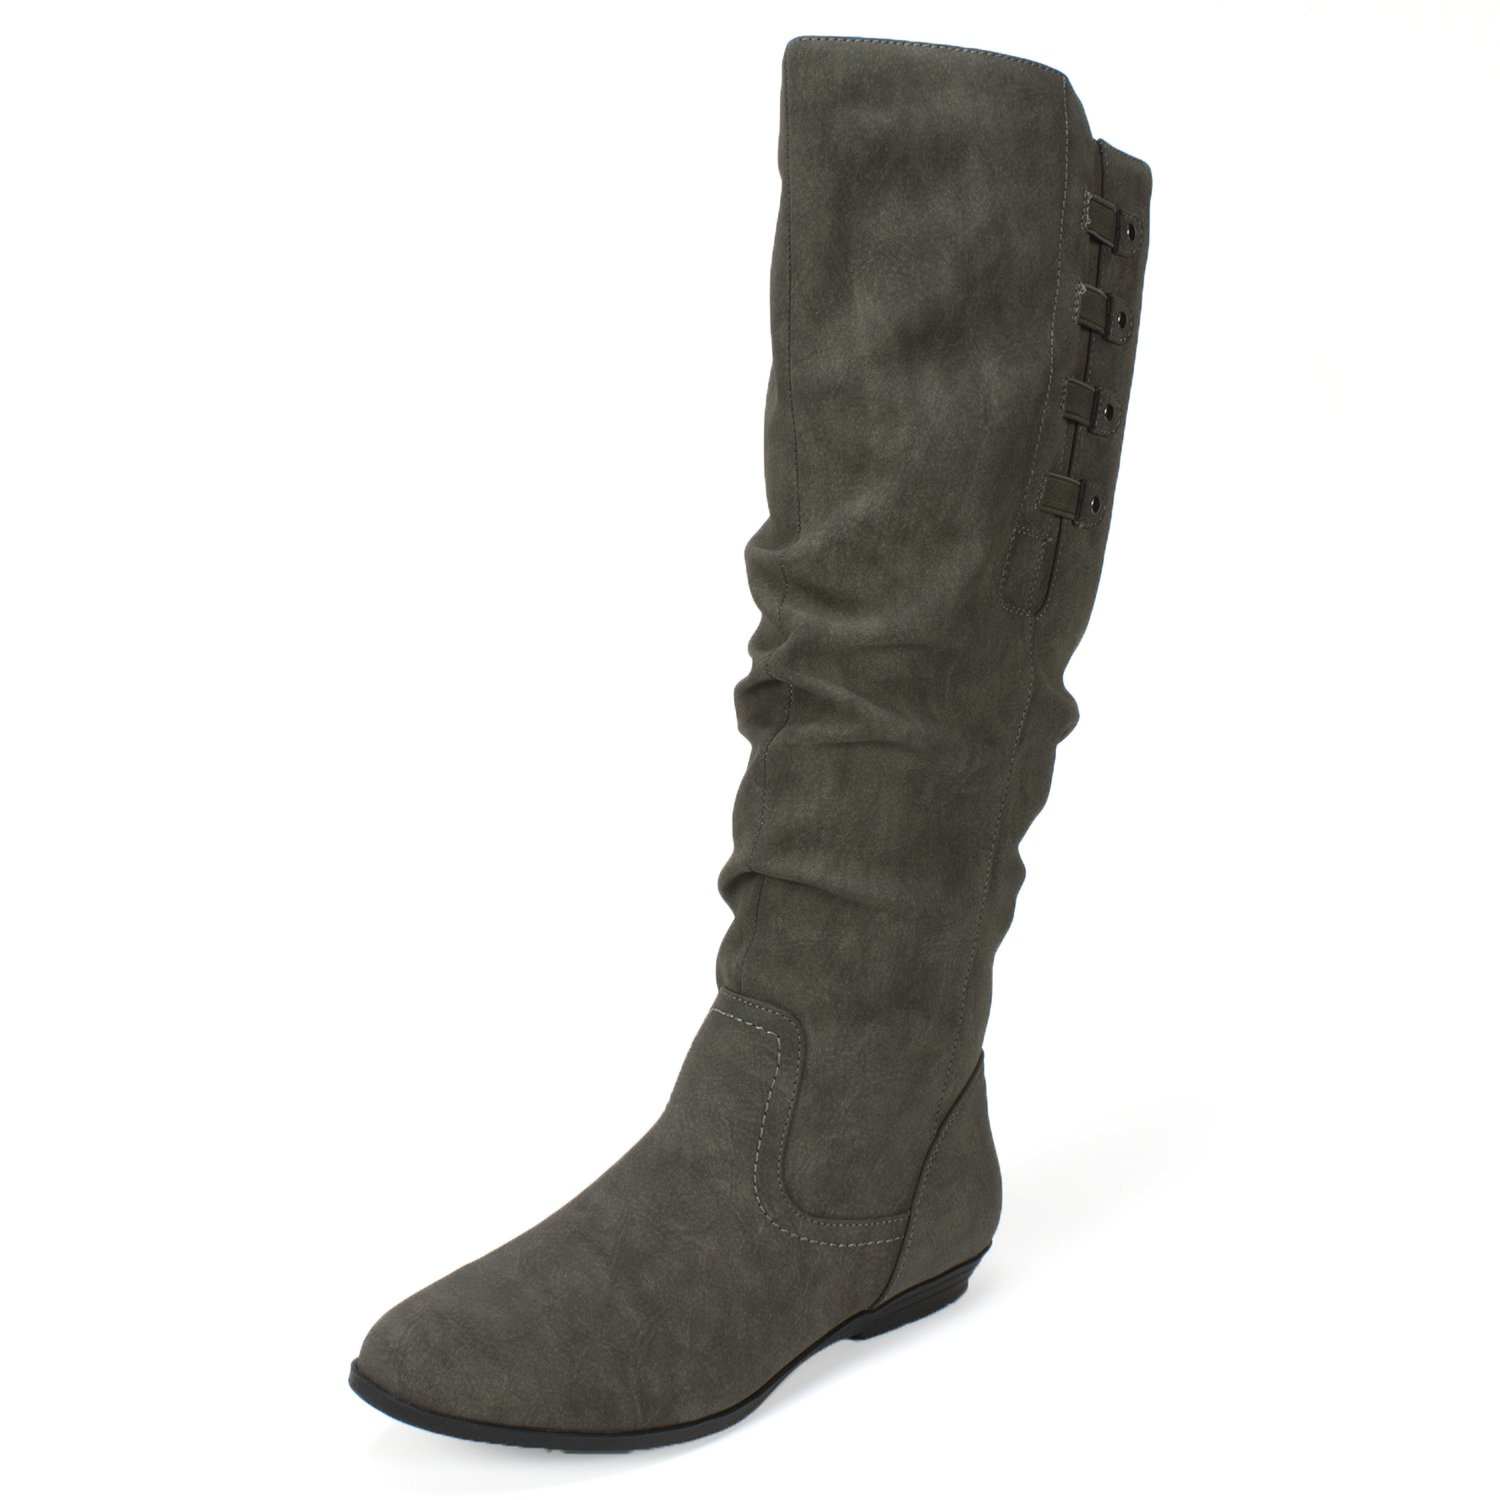 CLIFFS BY WHITE MOUNTAIN Cliffs 'Francie' Women's Boot B0757YXPZX 7 B(M) US|Charcoal